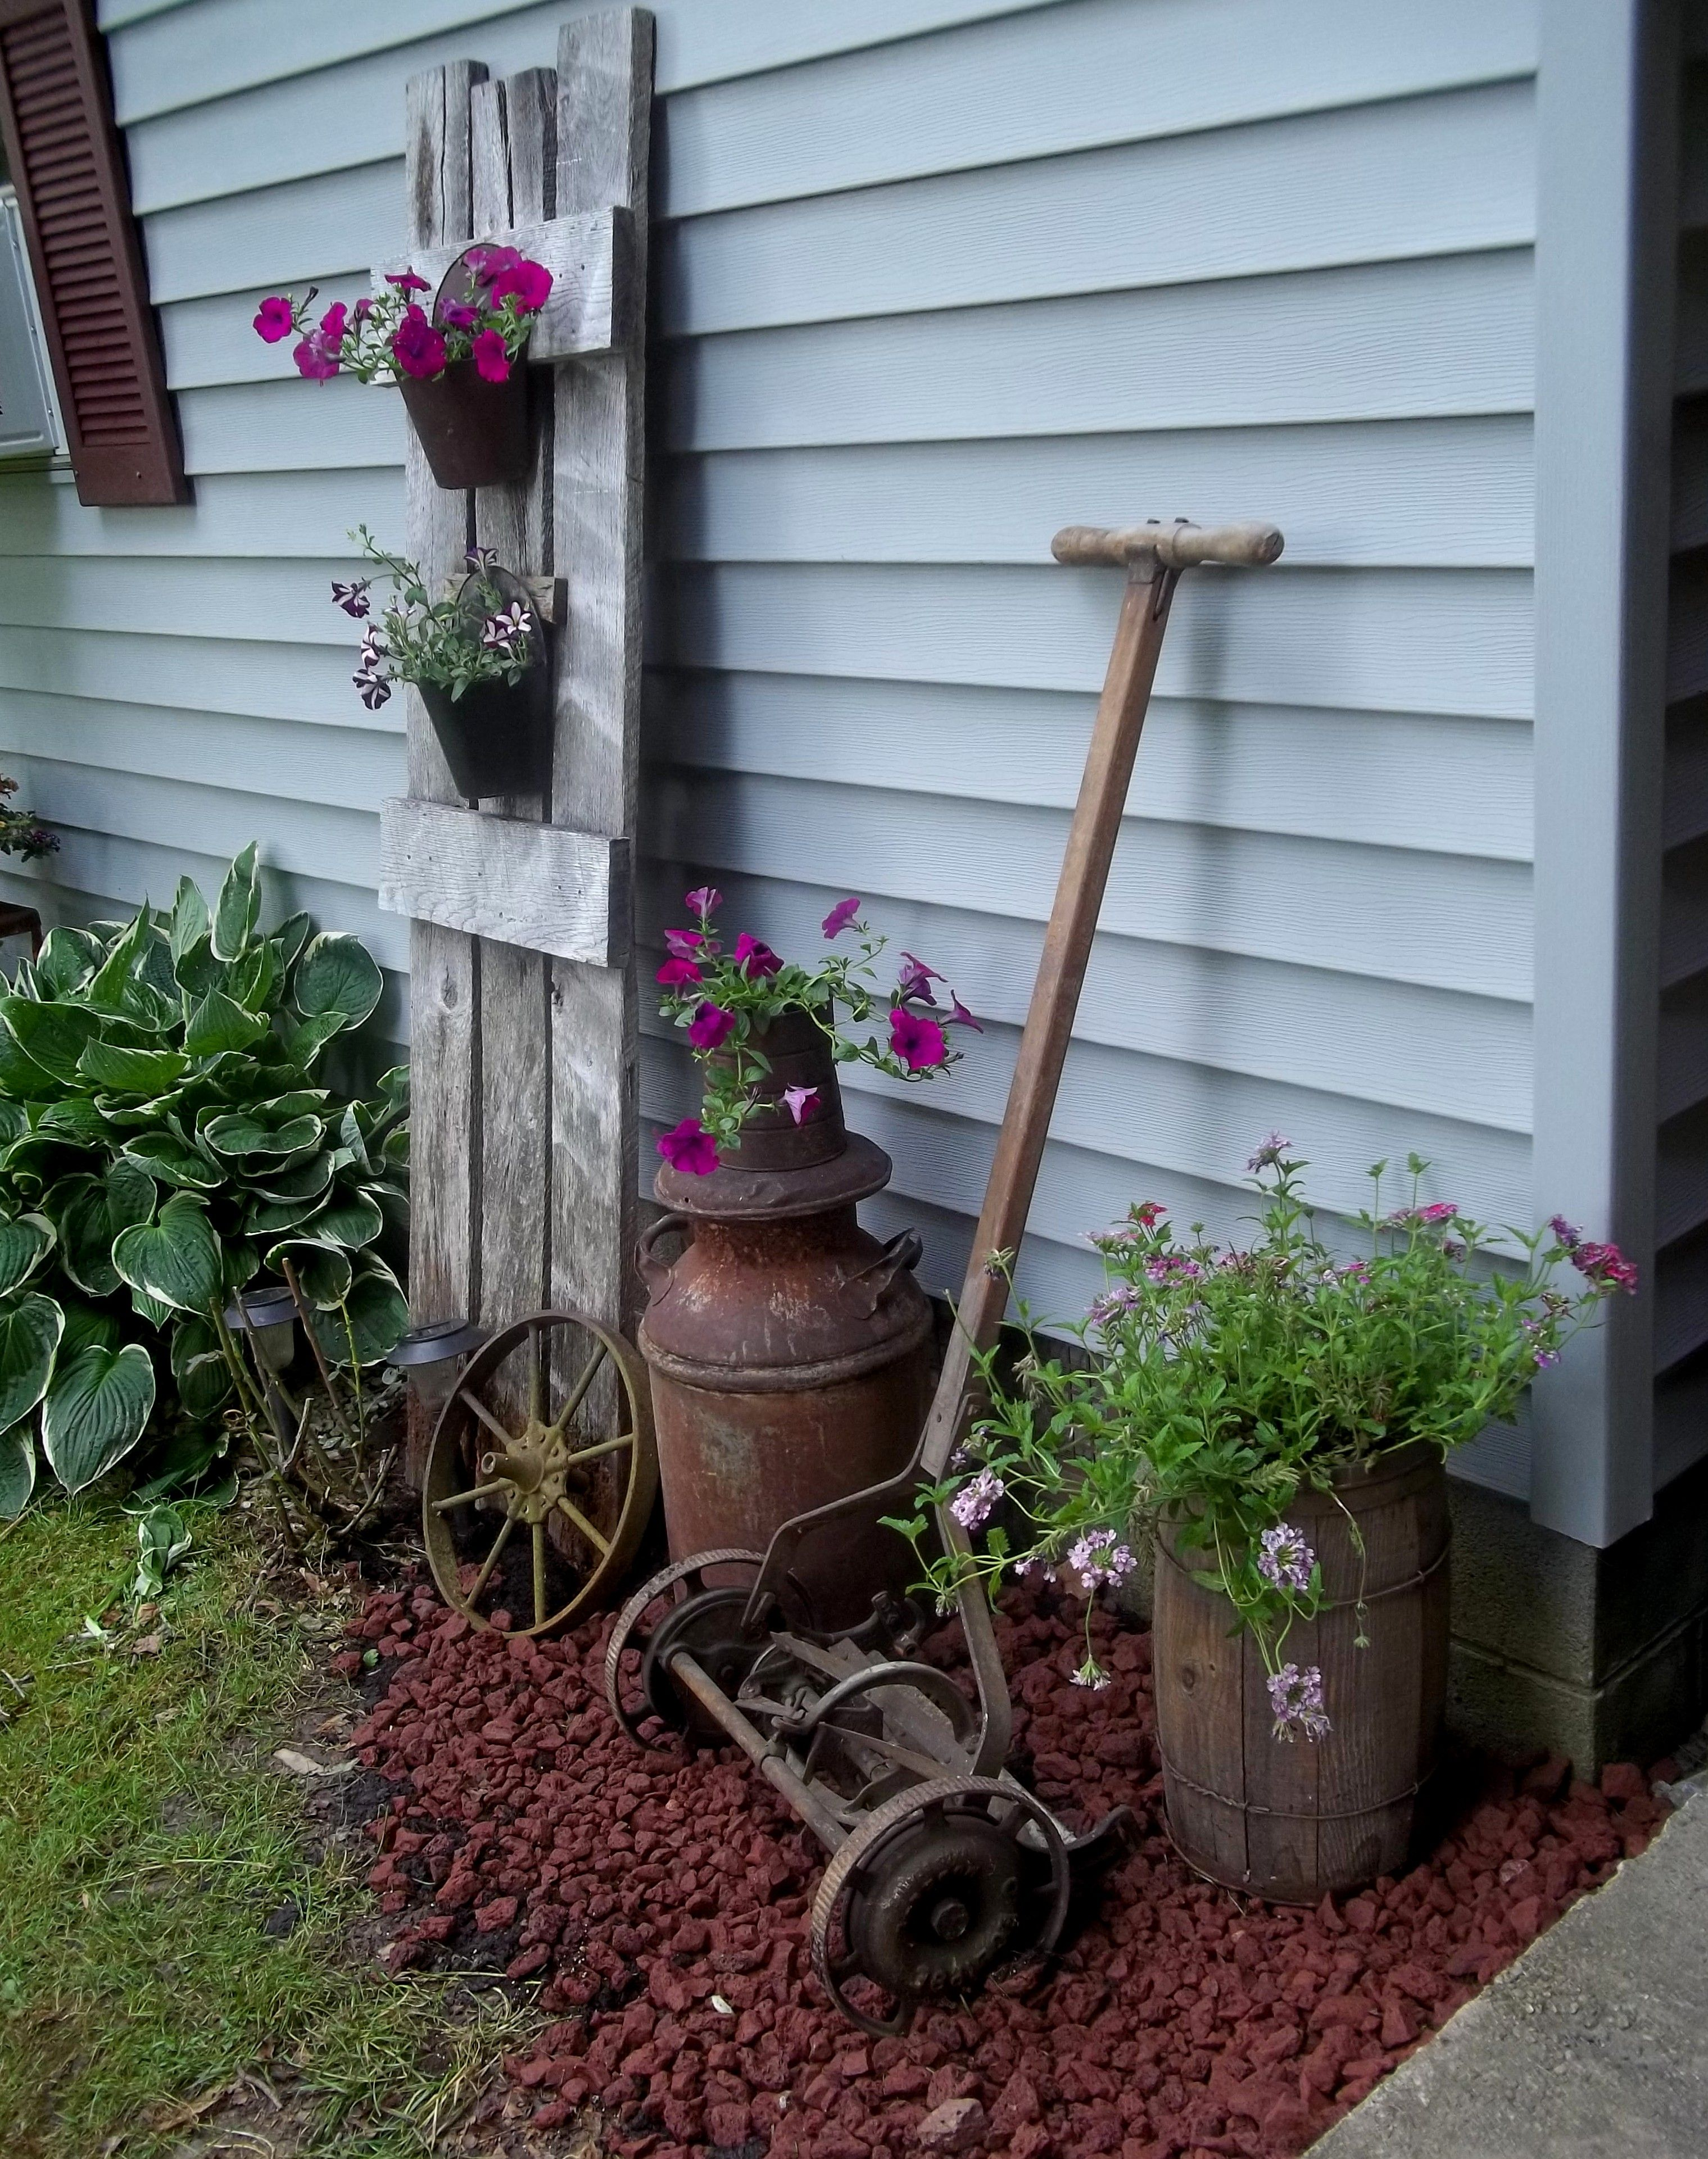 old, rusty and unexpected pieces in the garden ... on